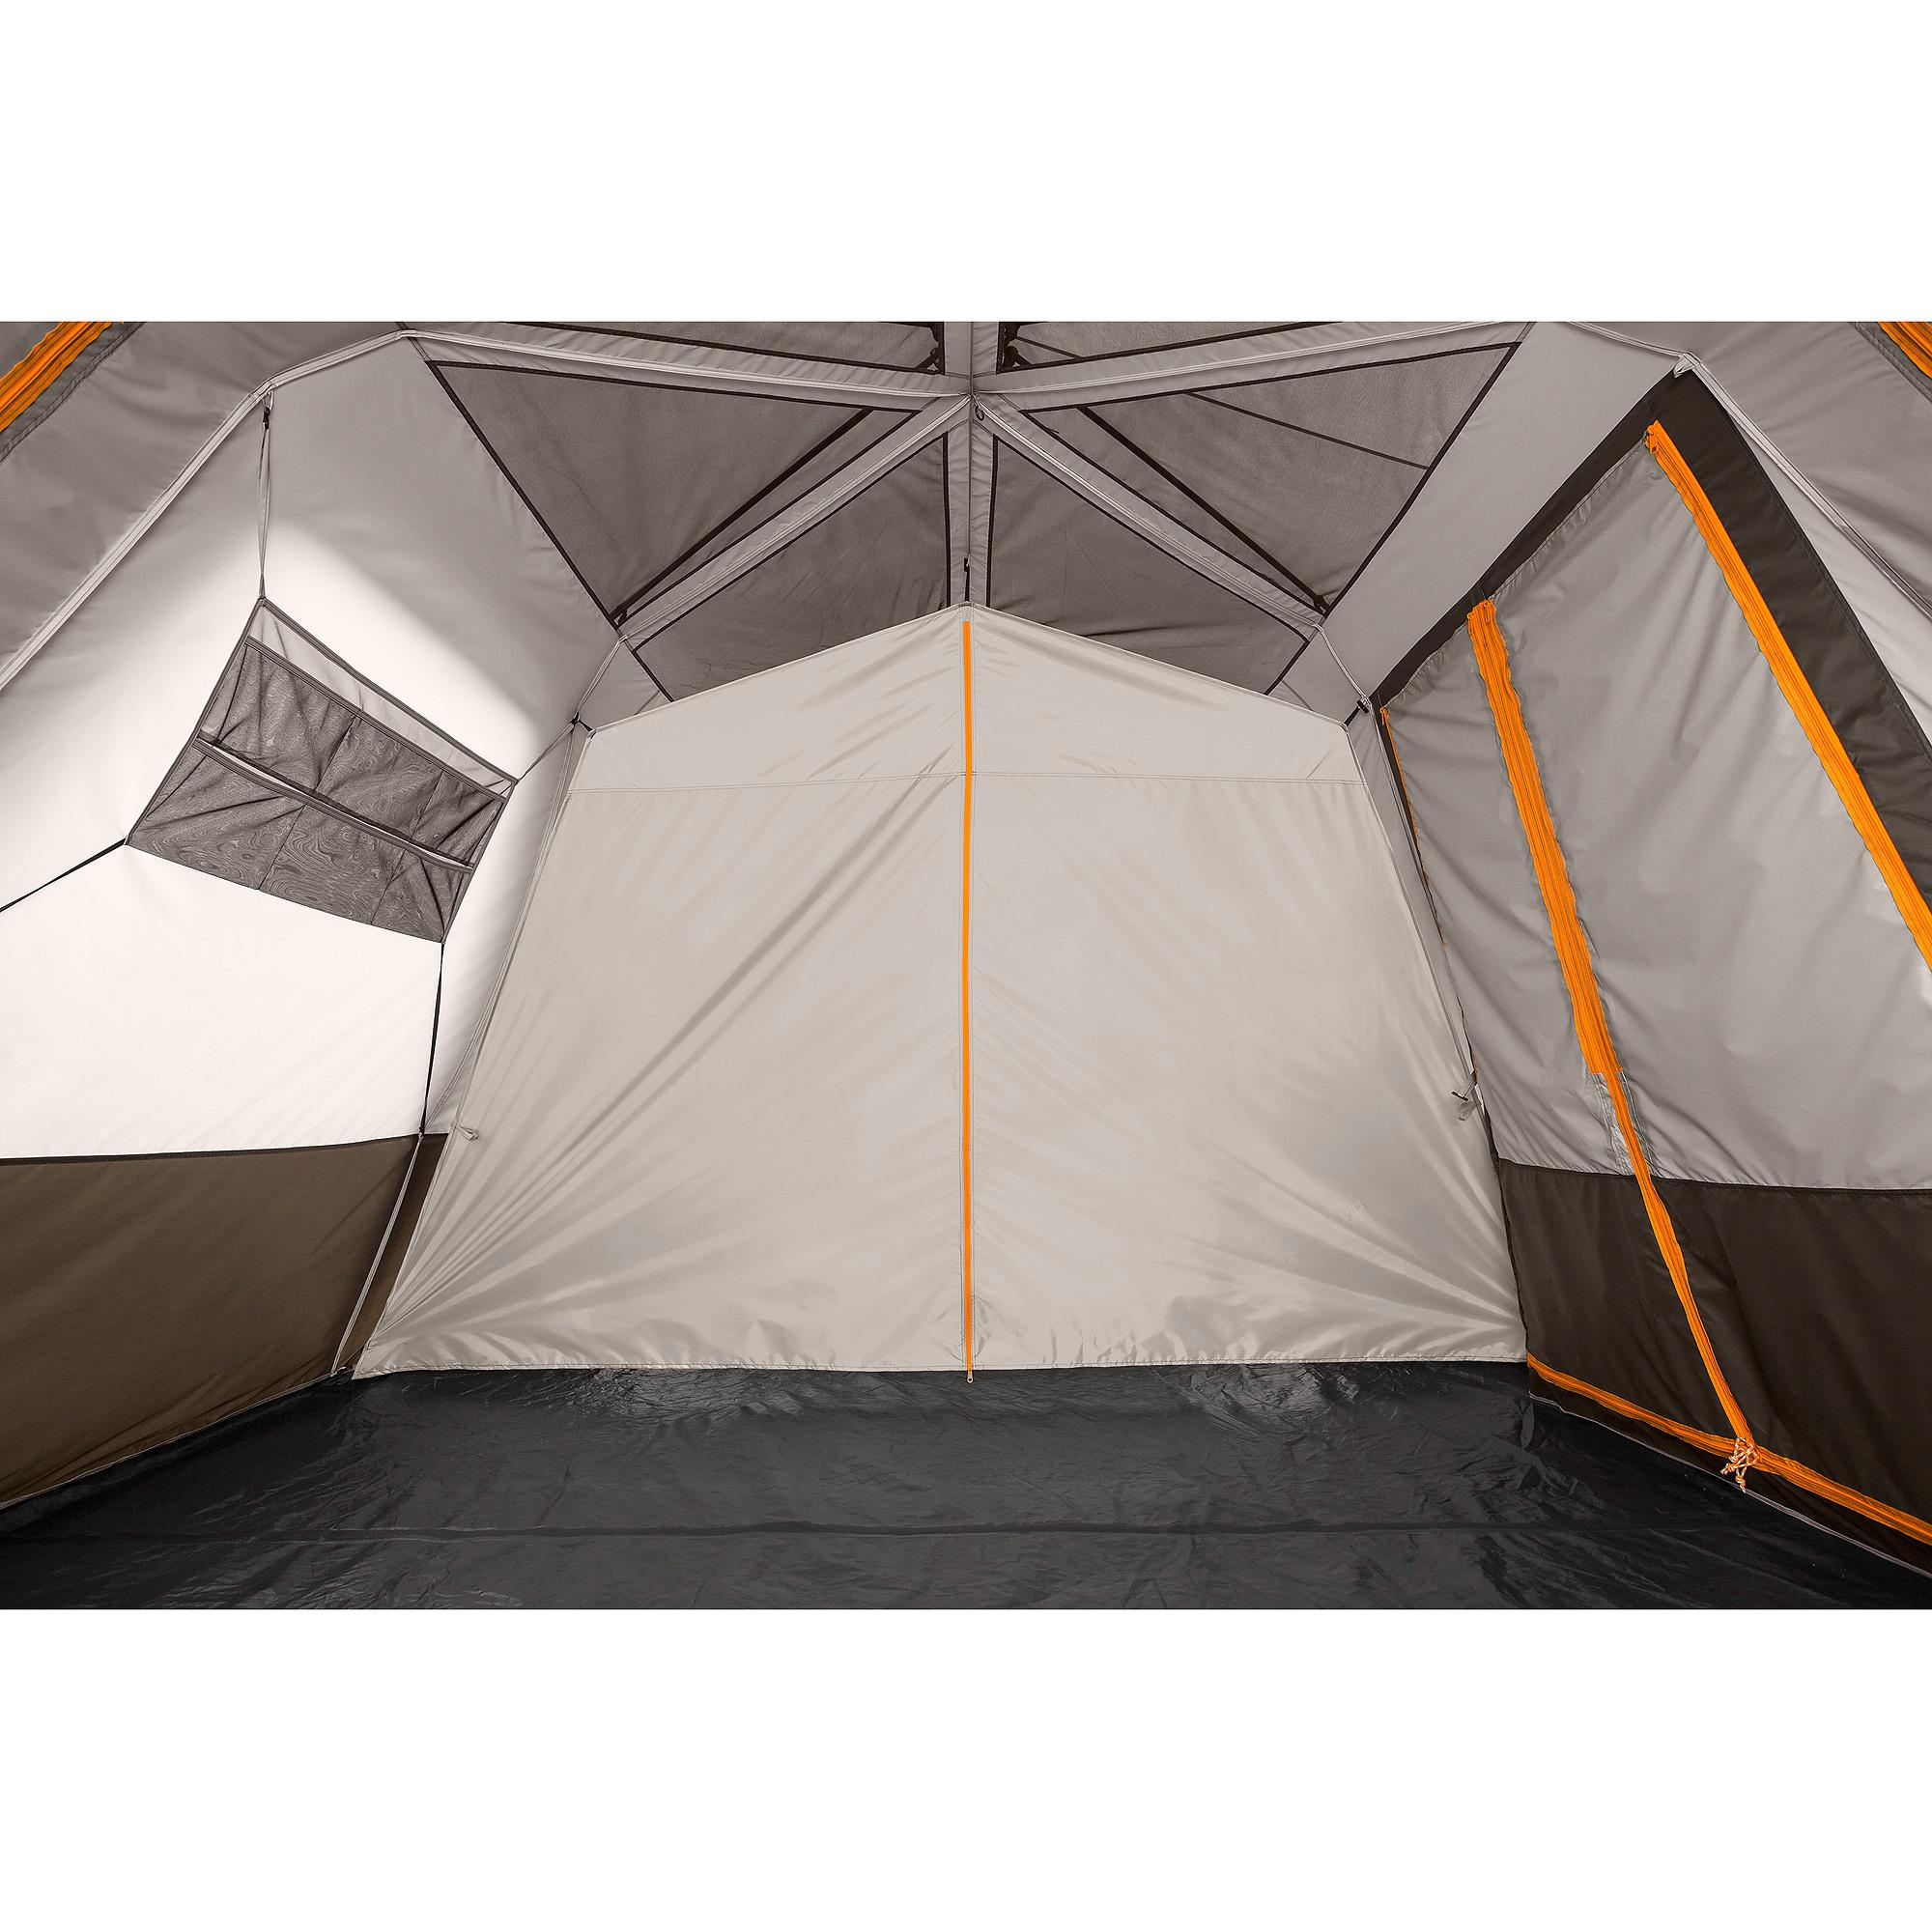 12 Person Instant Tent : Bushnell shield series person room instant cabin tent